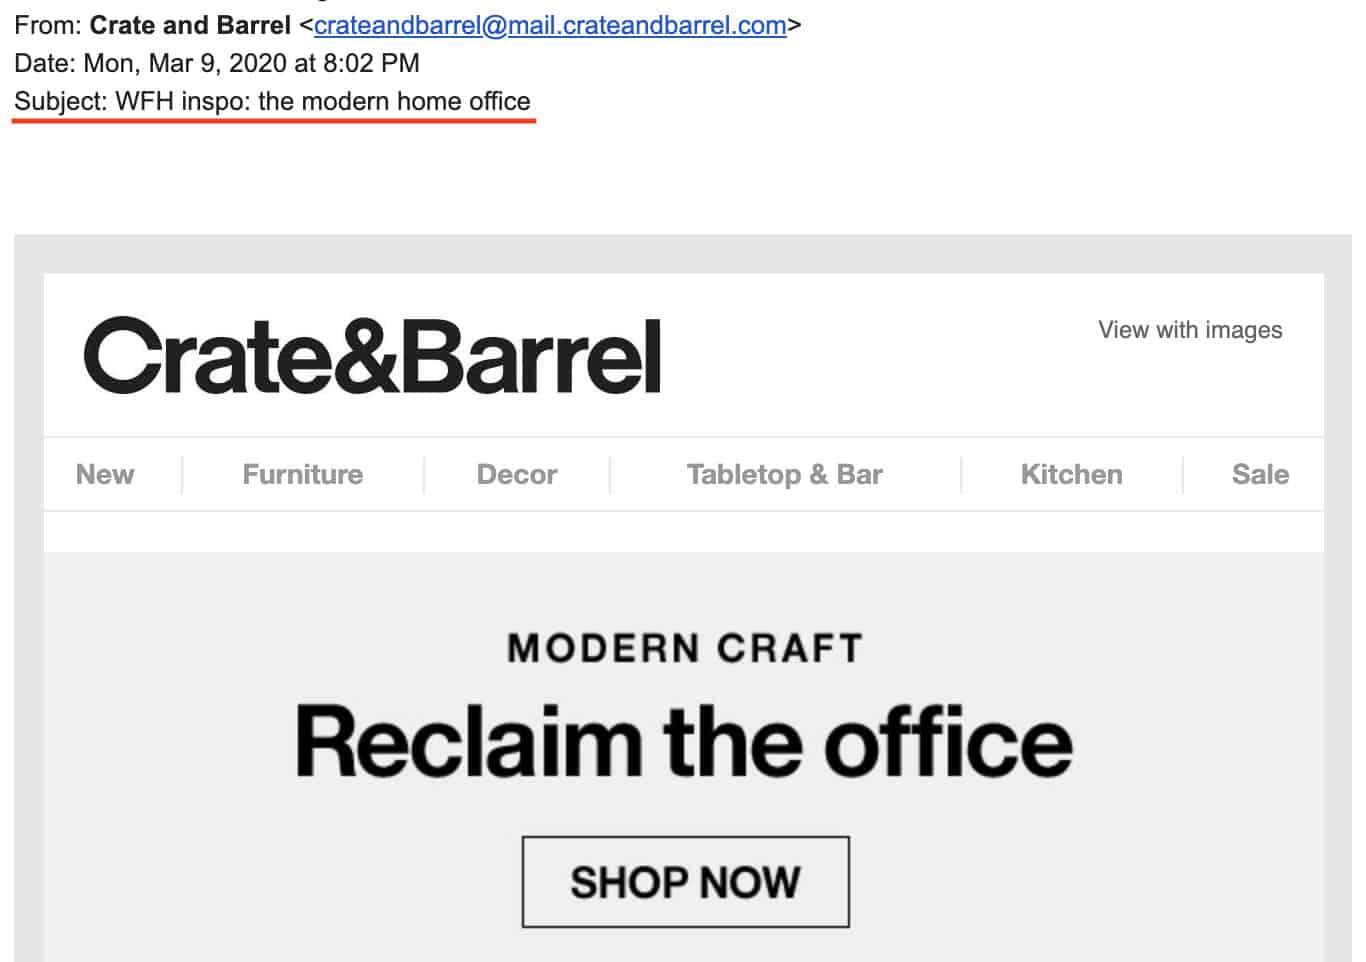 Crate&Barrel: Modern Craft - Reclaim the Office